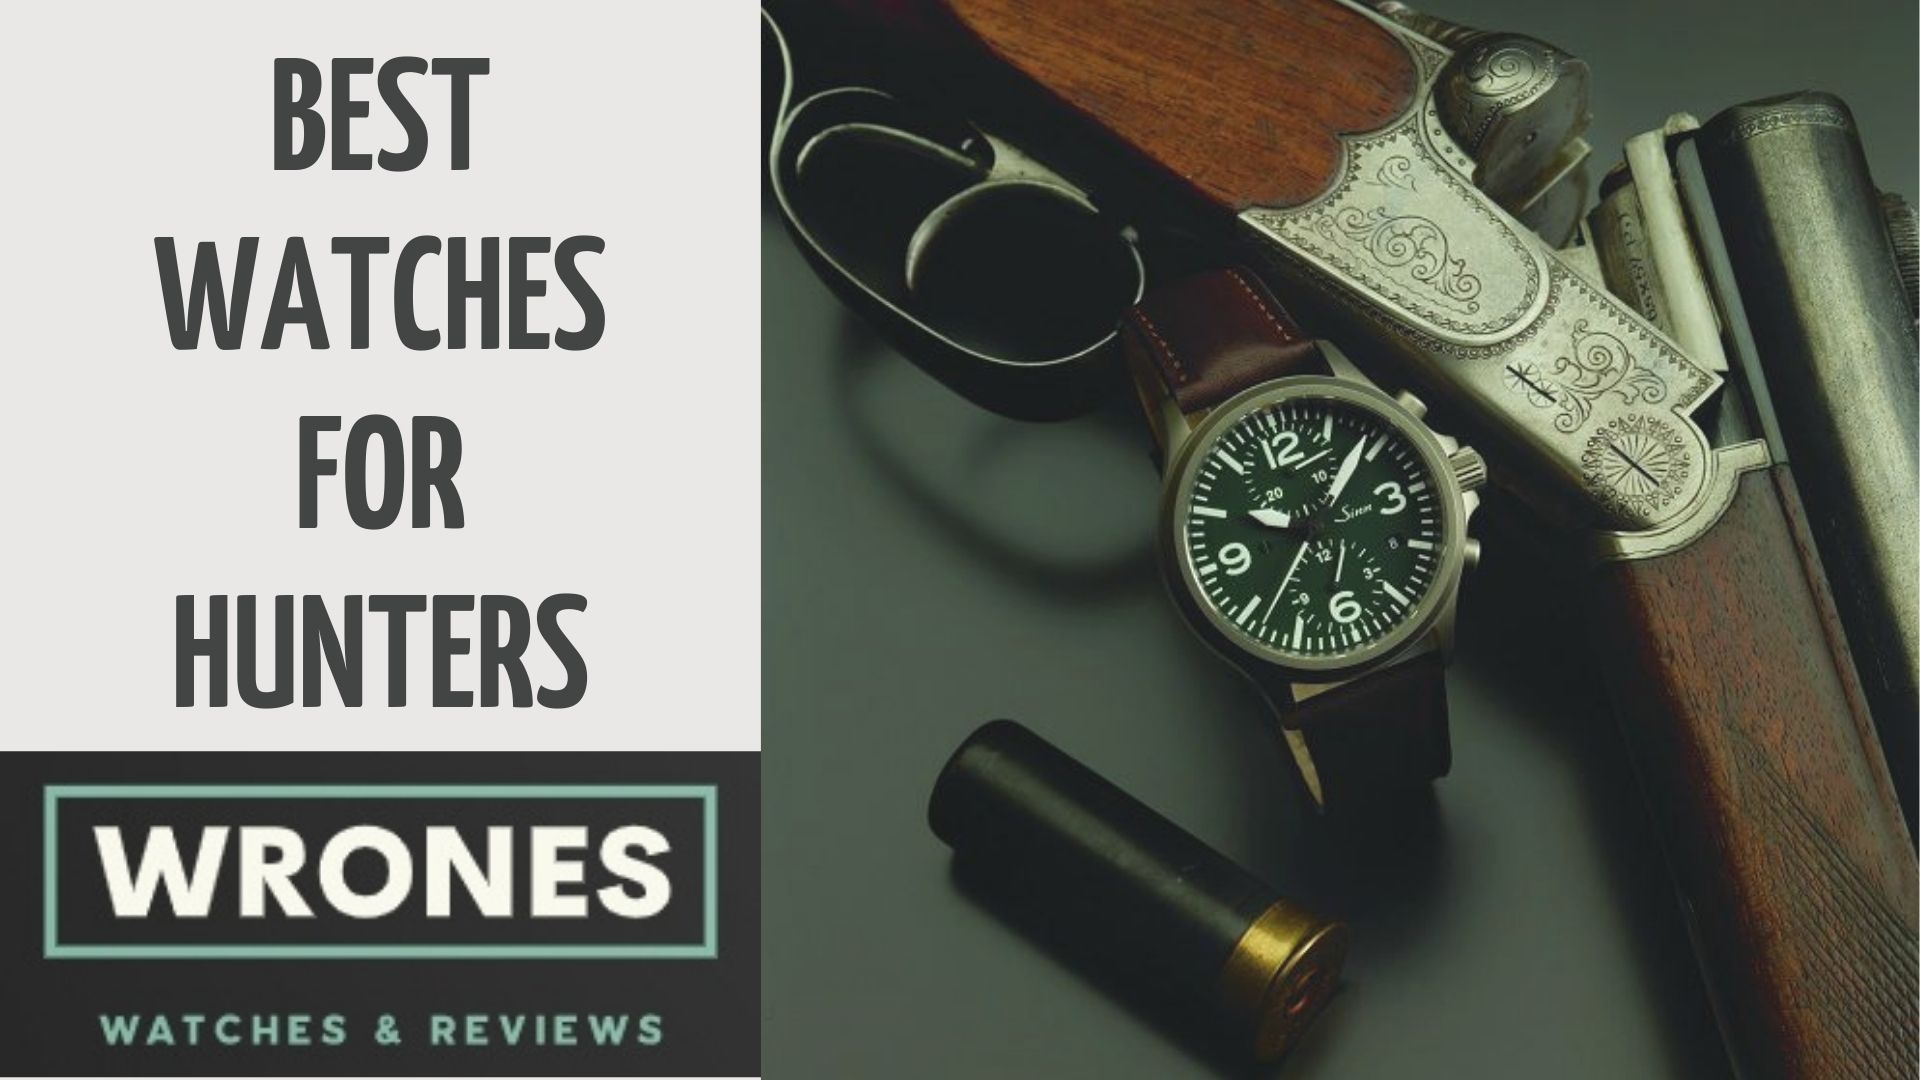 Best watches for Hunters wrones